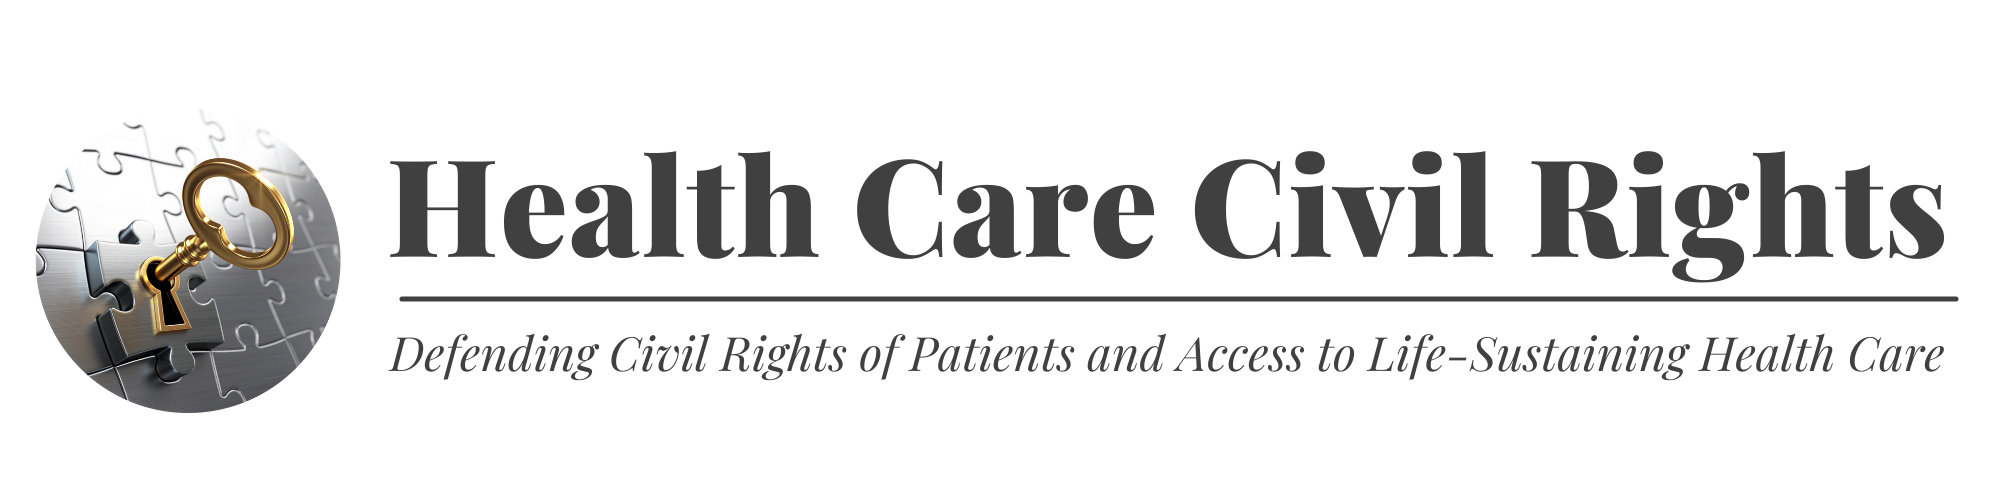 Health Care Civil Rights Task Force